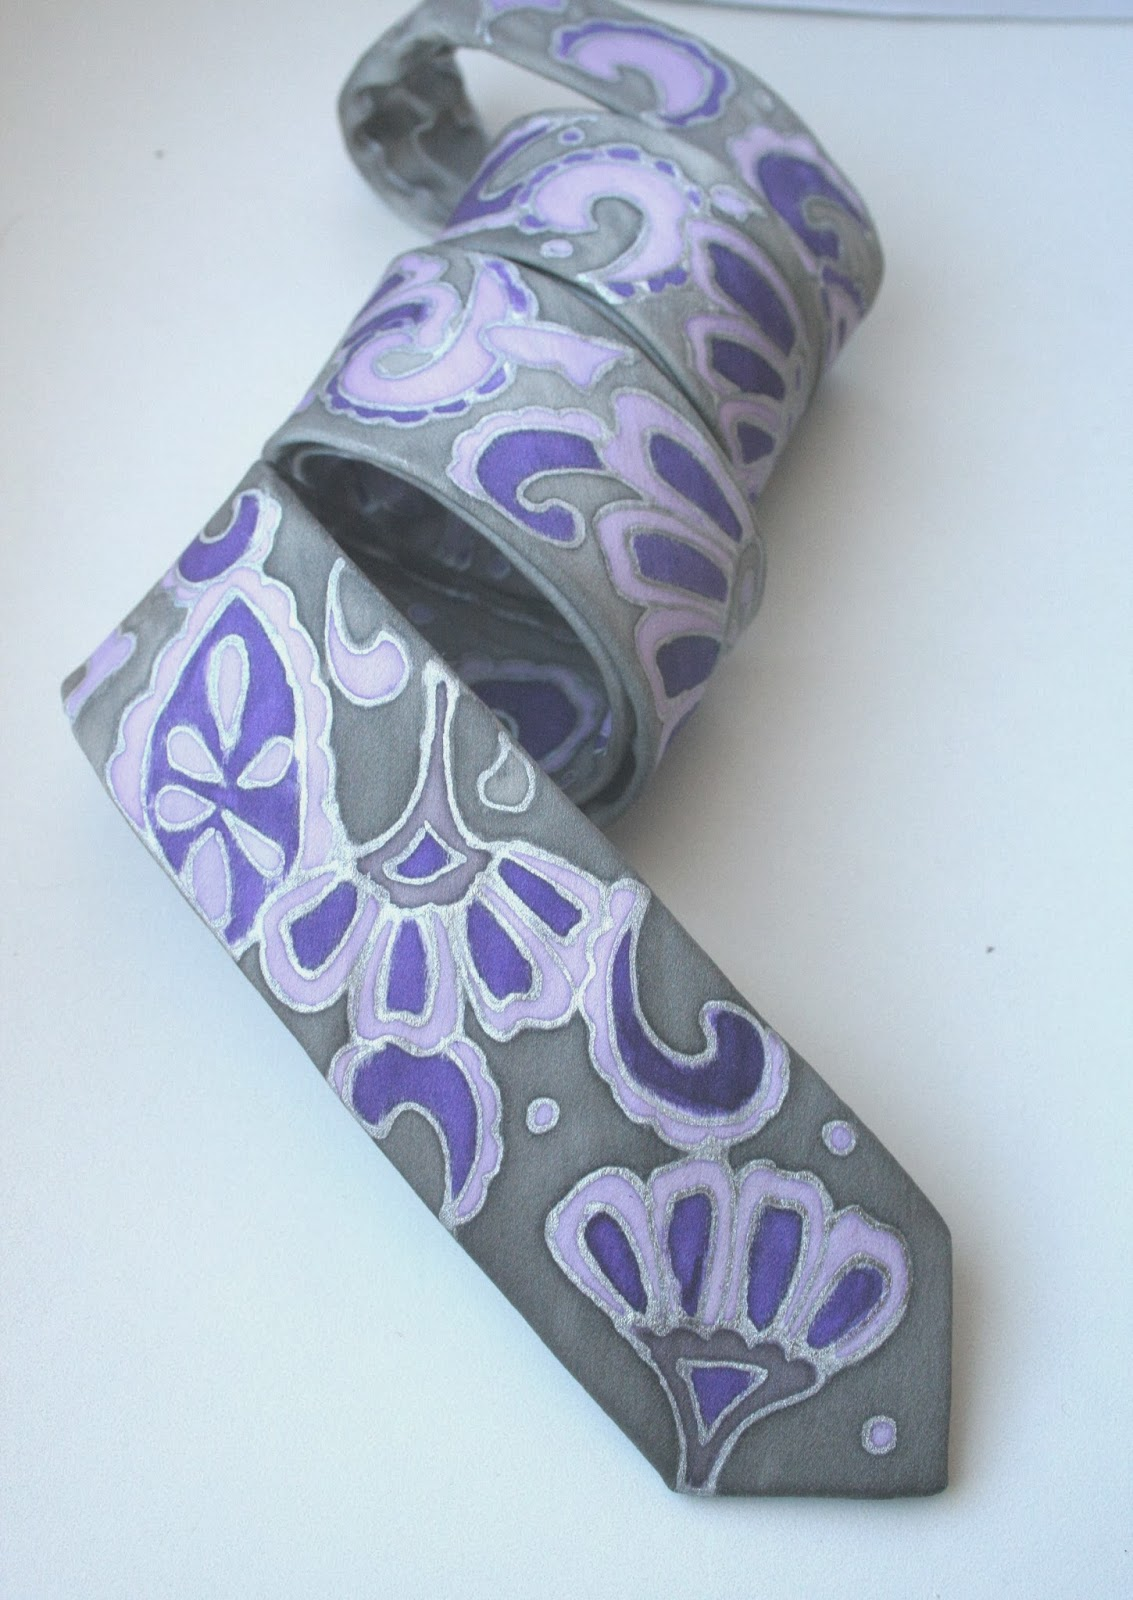 https://www.etsy.com/listing/176922897/wedding-skinny-tie-lavender-silver?ref=shop_home_active_1